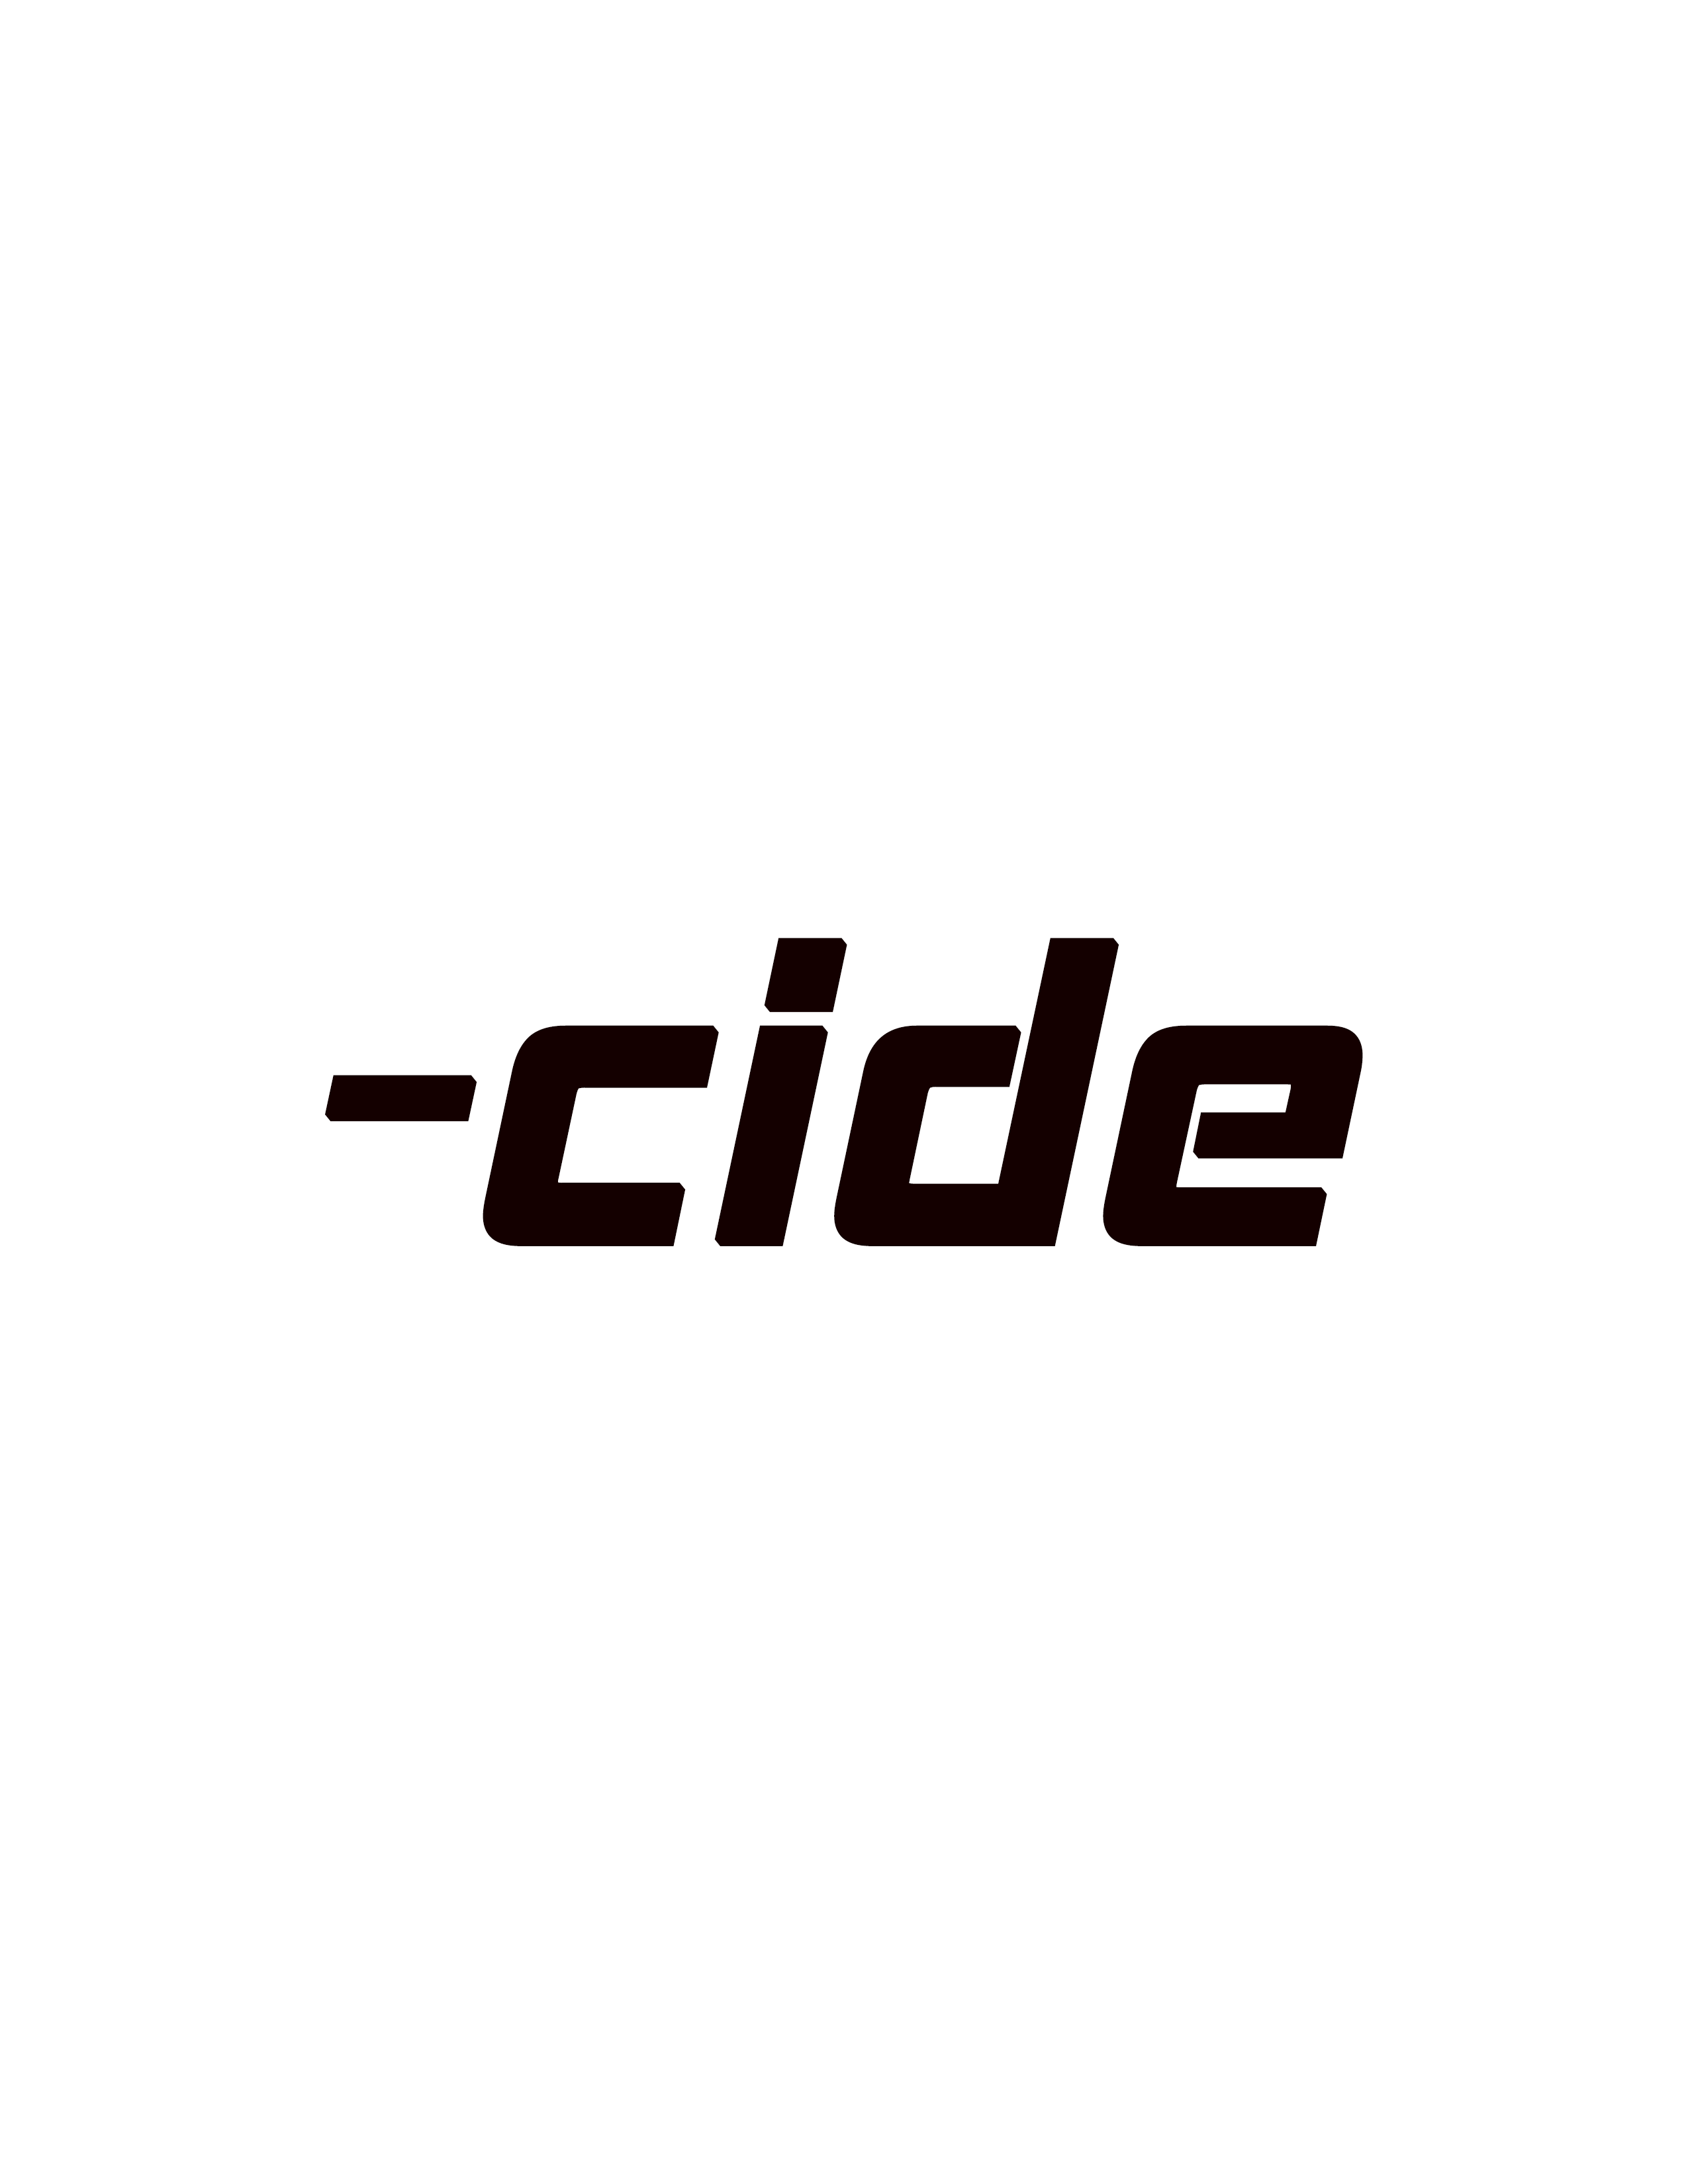 About -cide